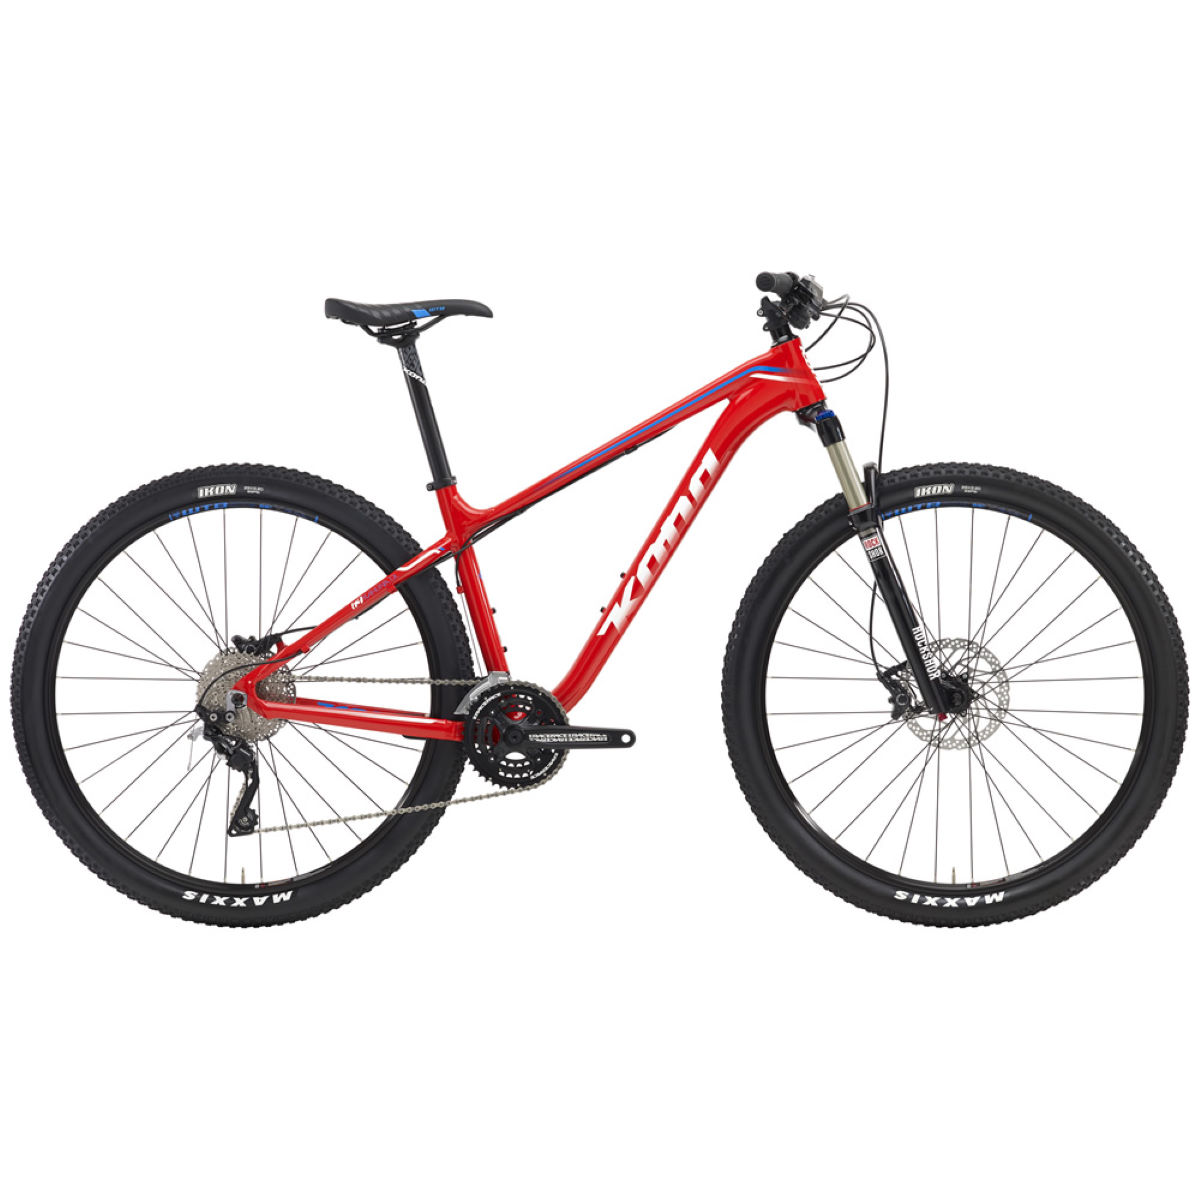 Kona Kahuna DL (2016) Mountain Bike   Hard Tail Mountain Bikes